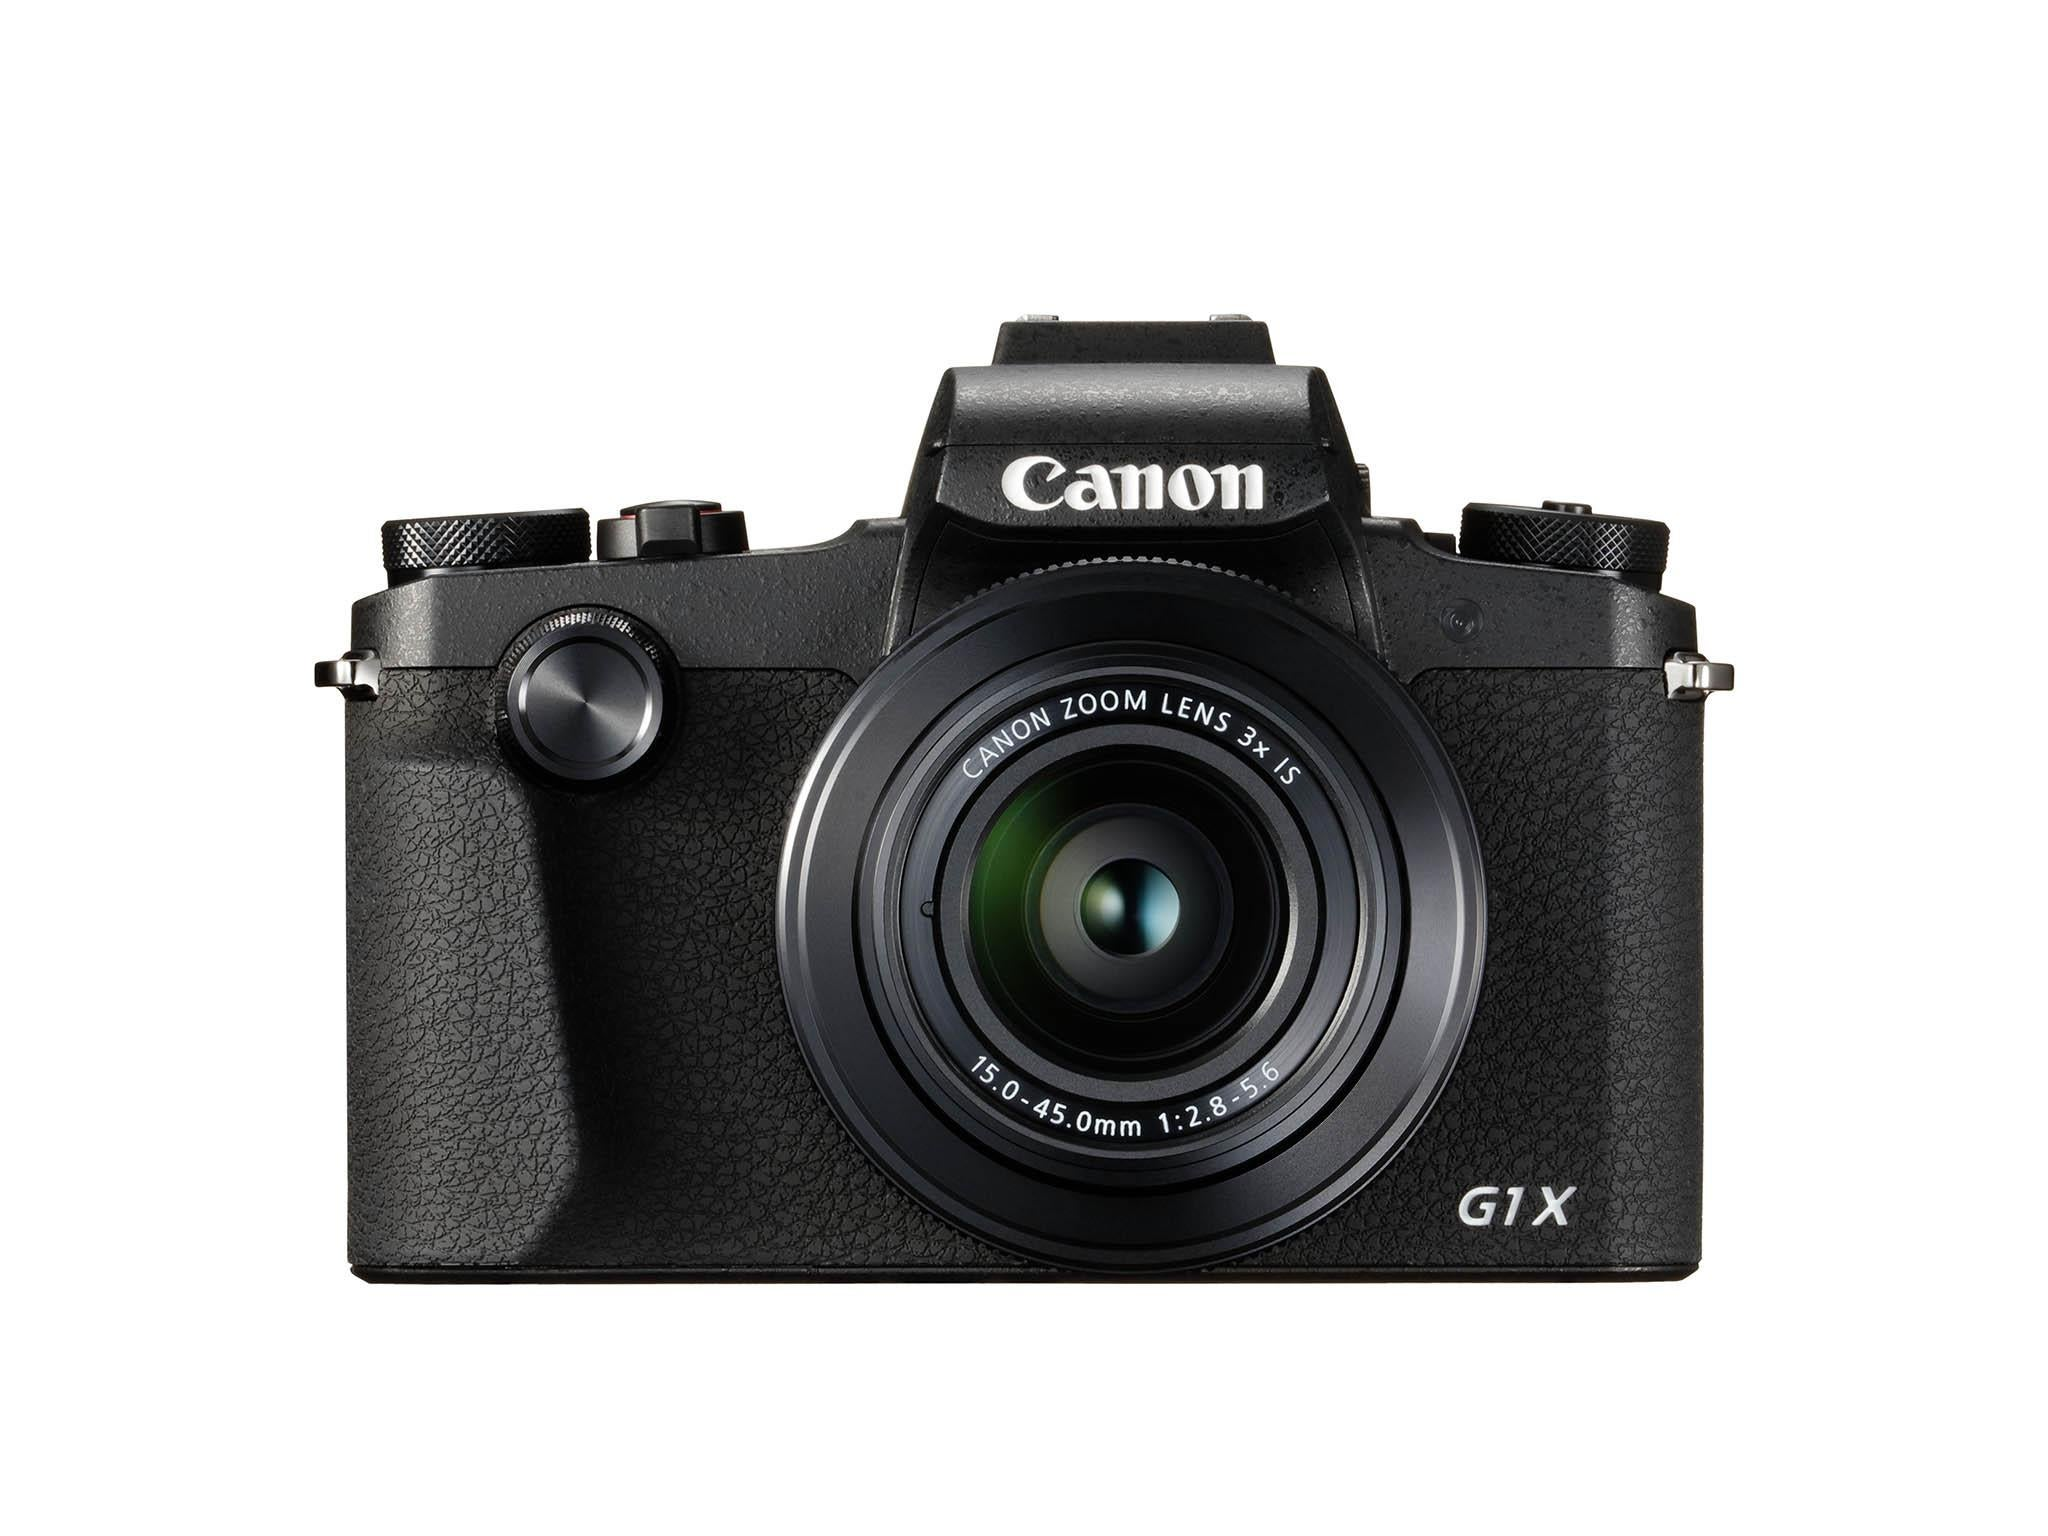 10 best compact cameras | The Independent